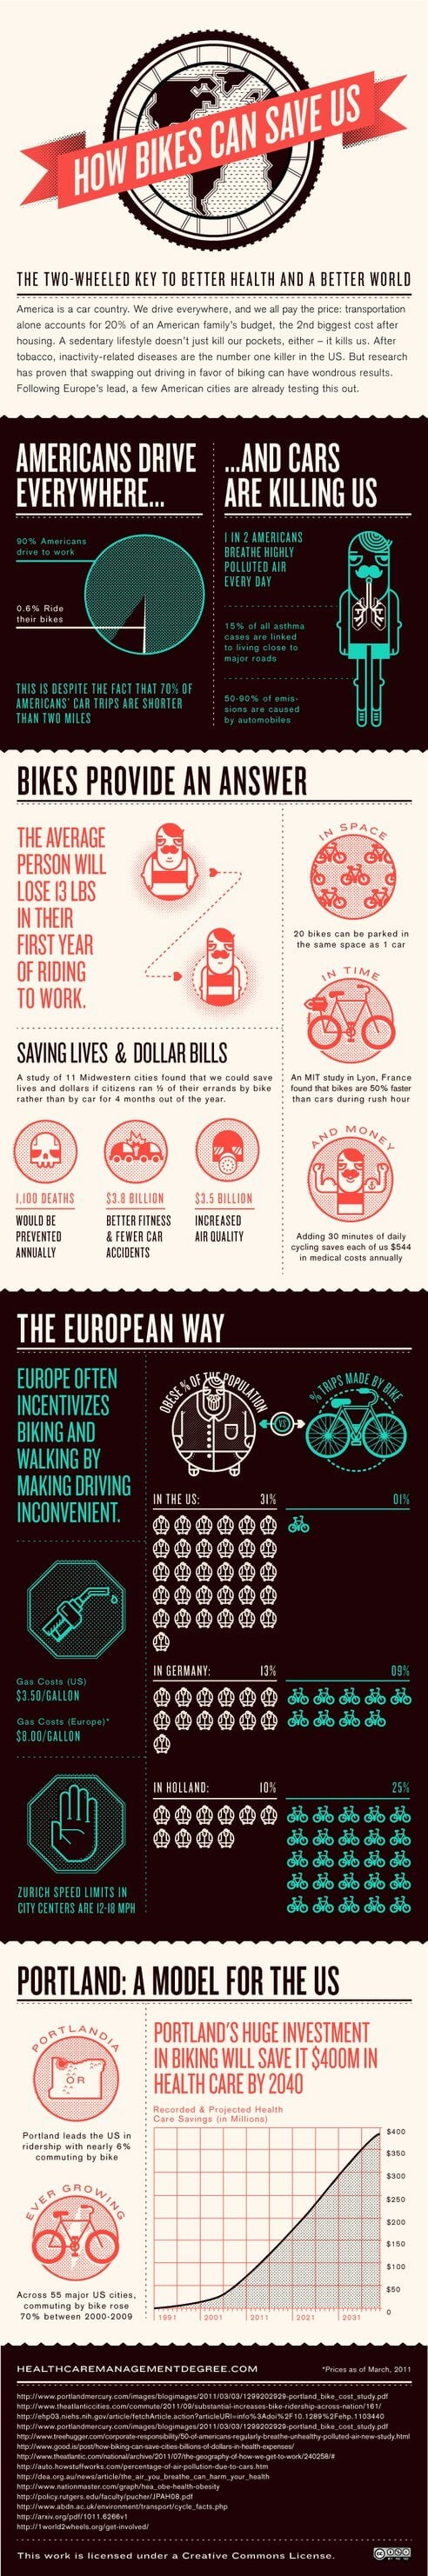 How bikes can save us infographic